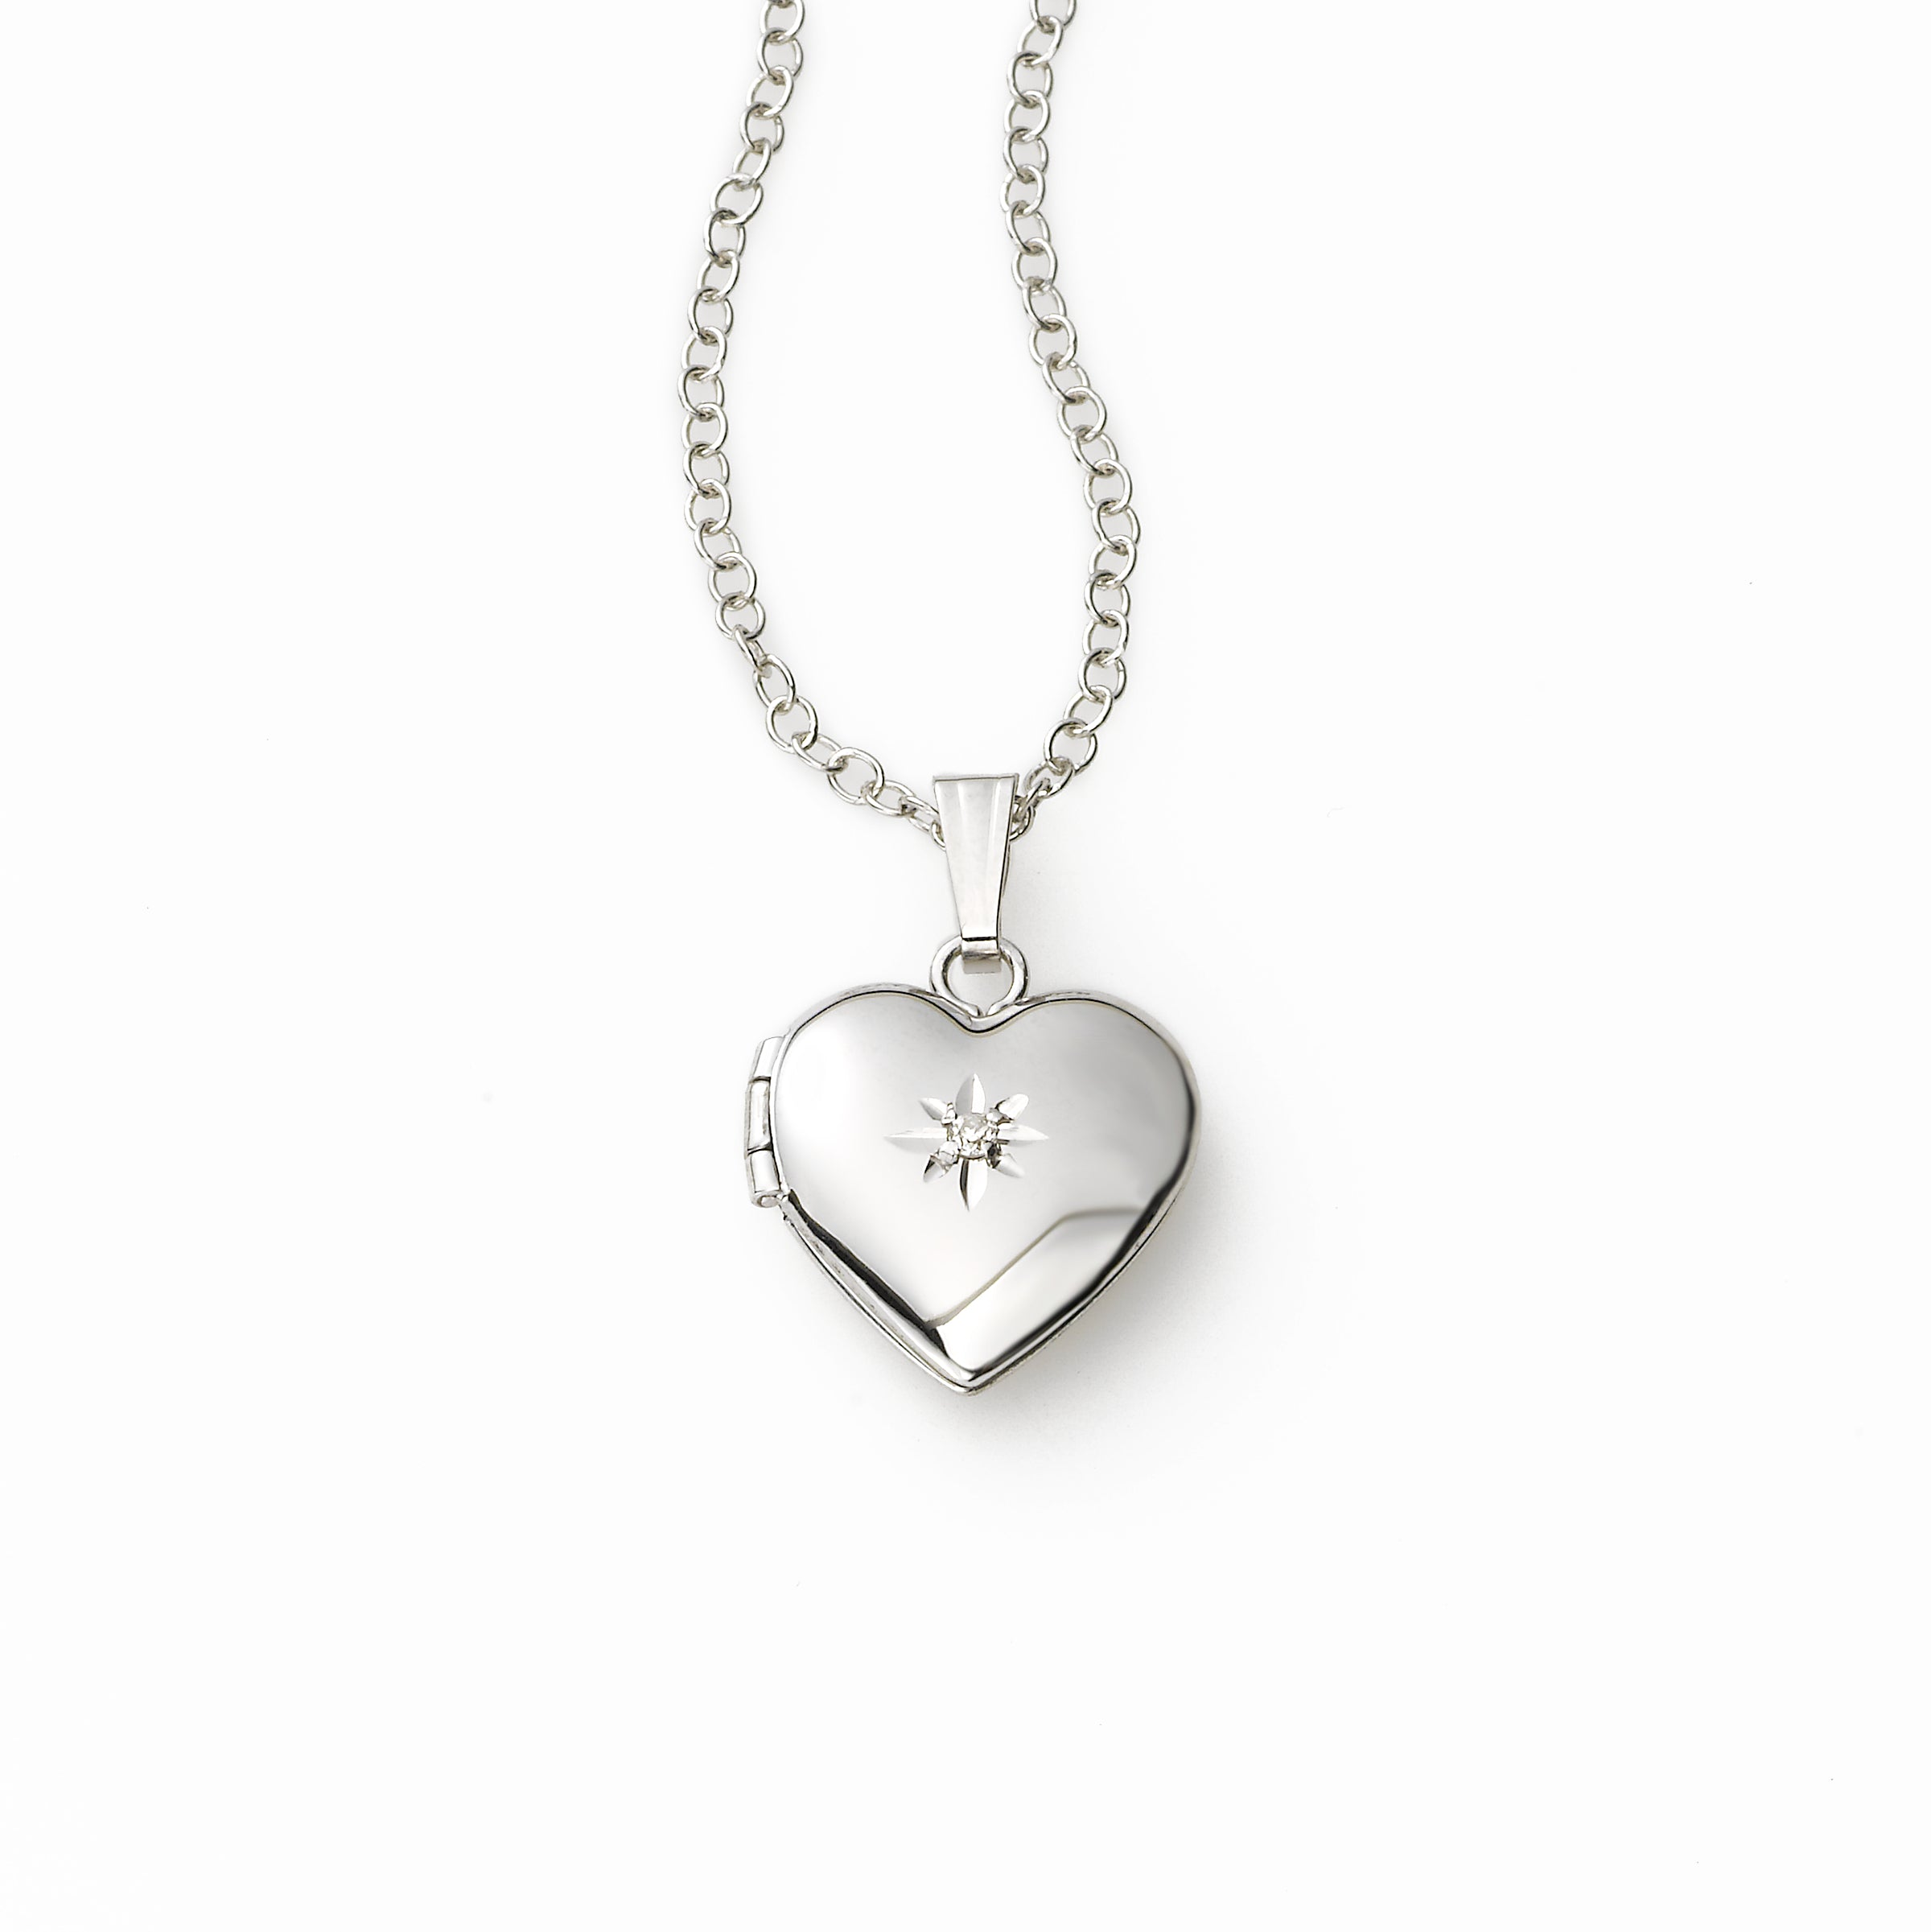 21610e1a6 Fortunoff Fine Jewelry. Home; Girls Heart Locket with Diamond Accent ...